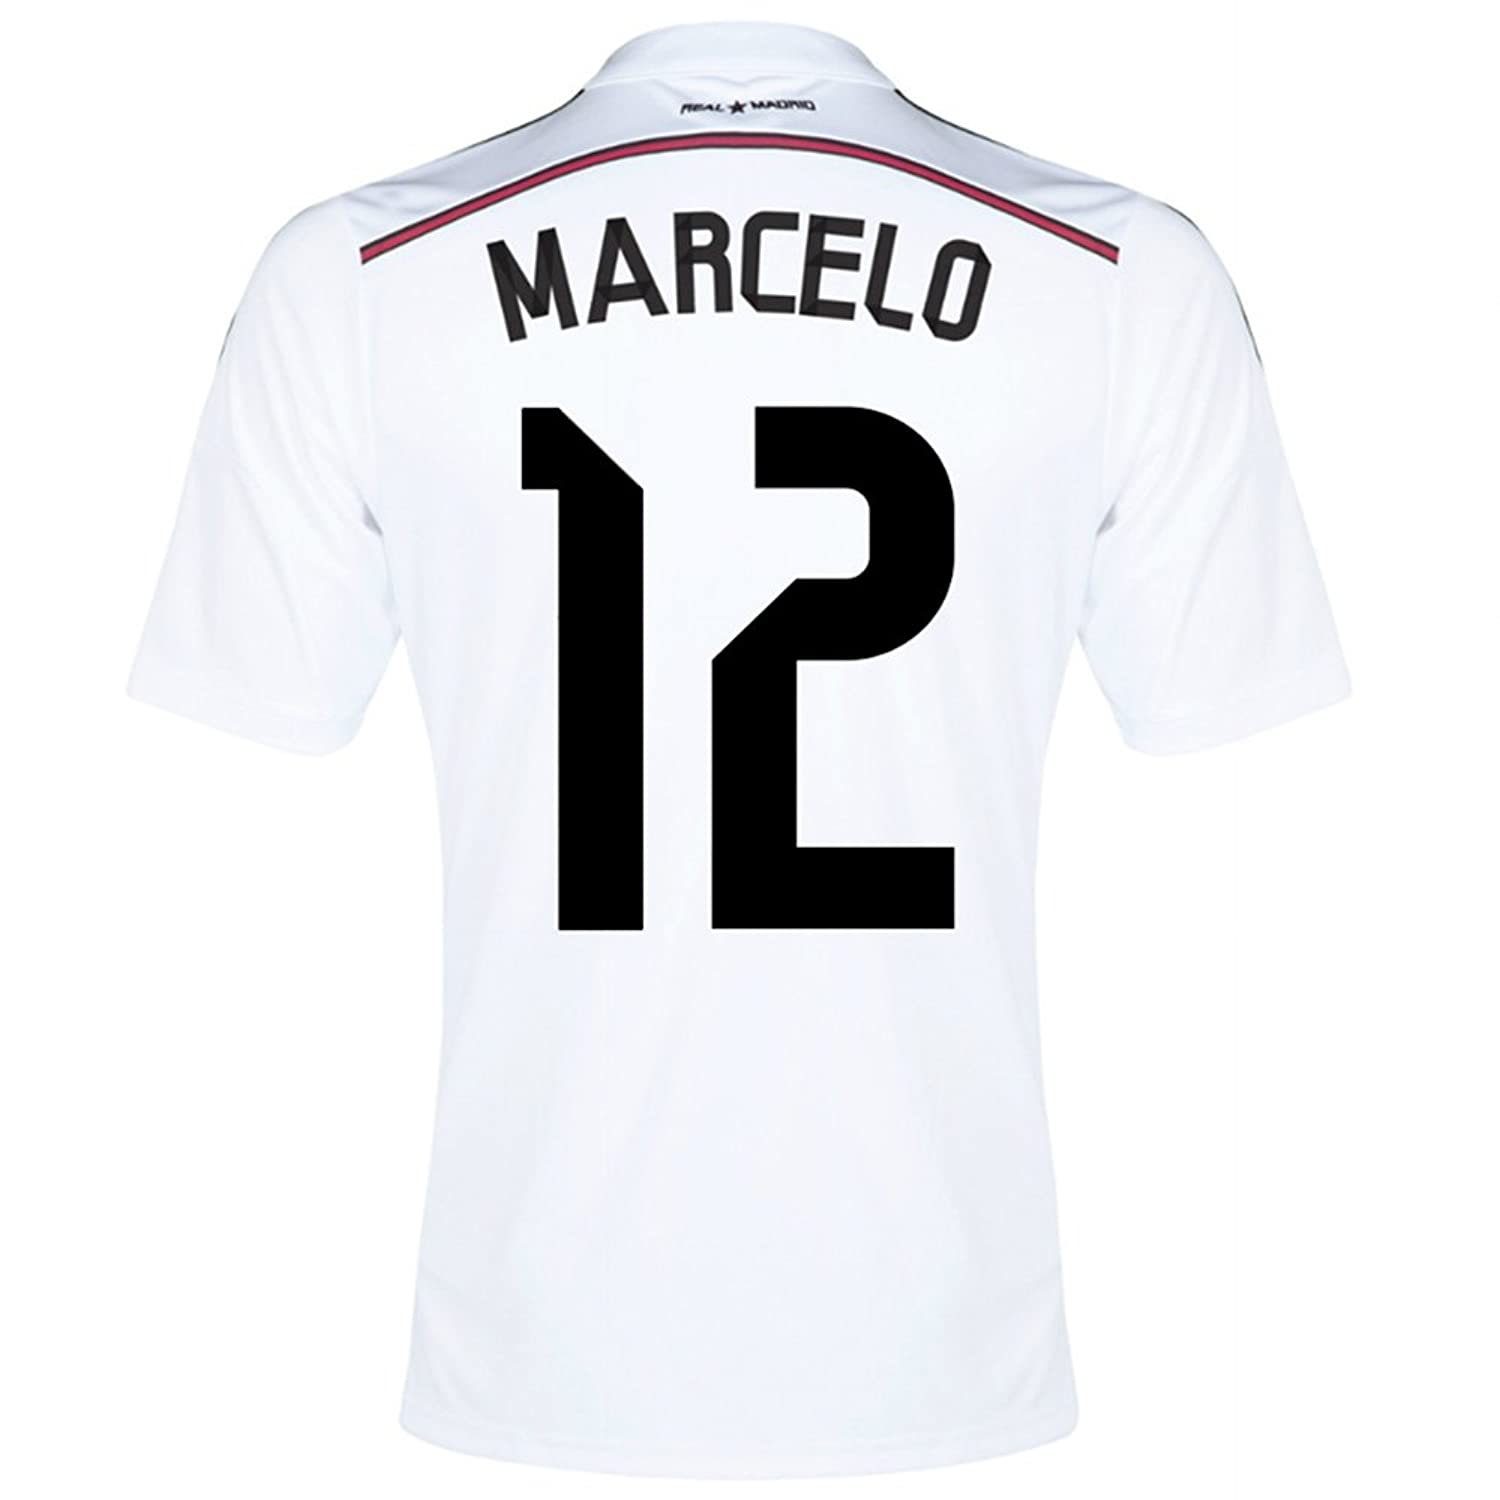 : Adidas MARCELO #12 Real Madrid Home Jersey 2014